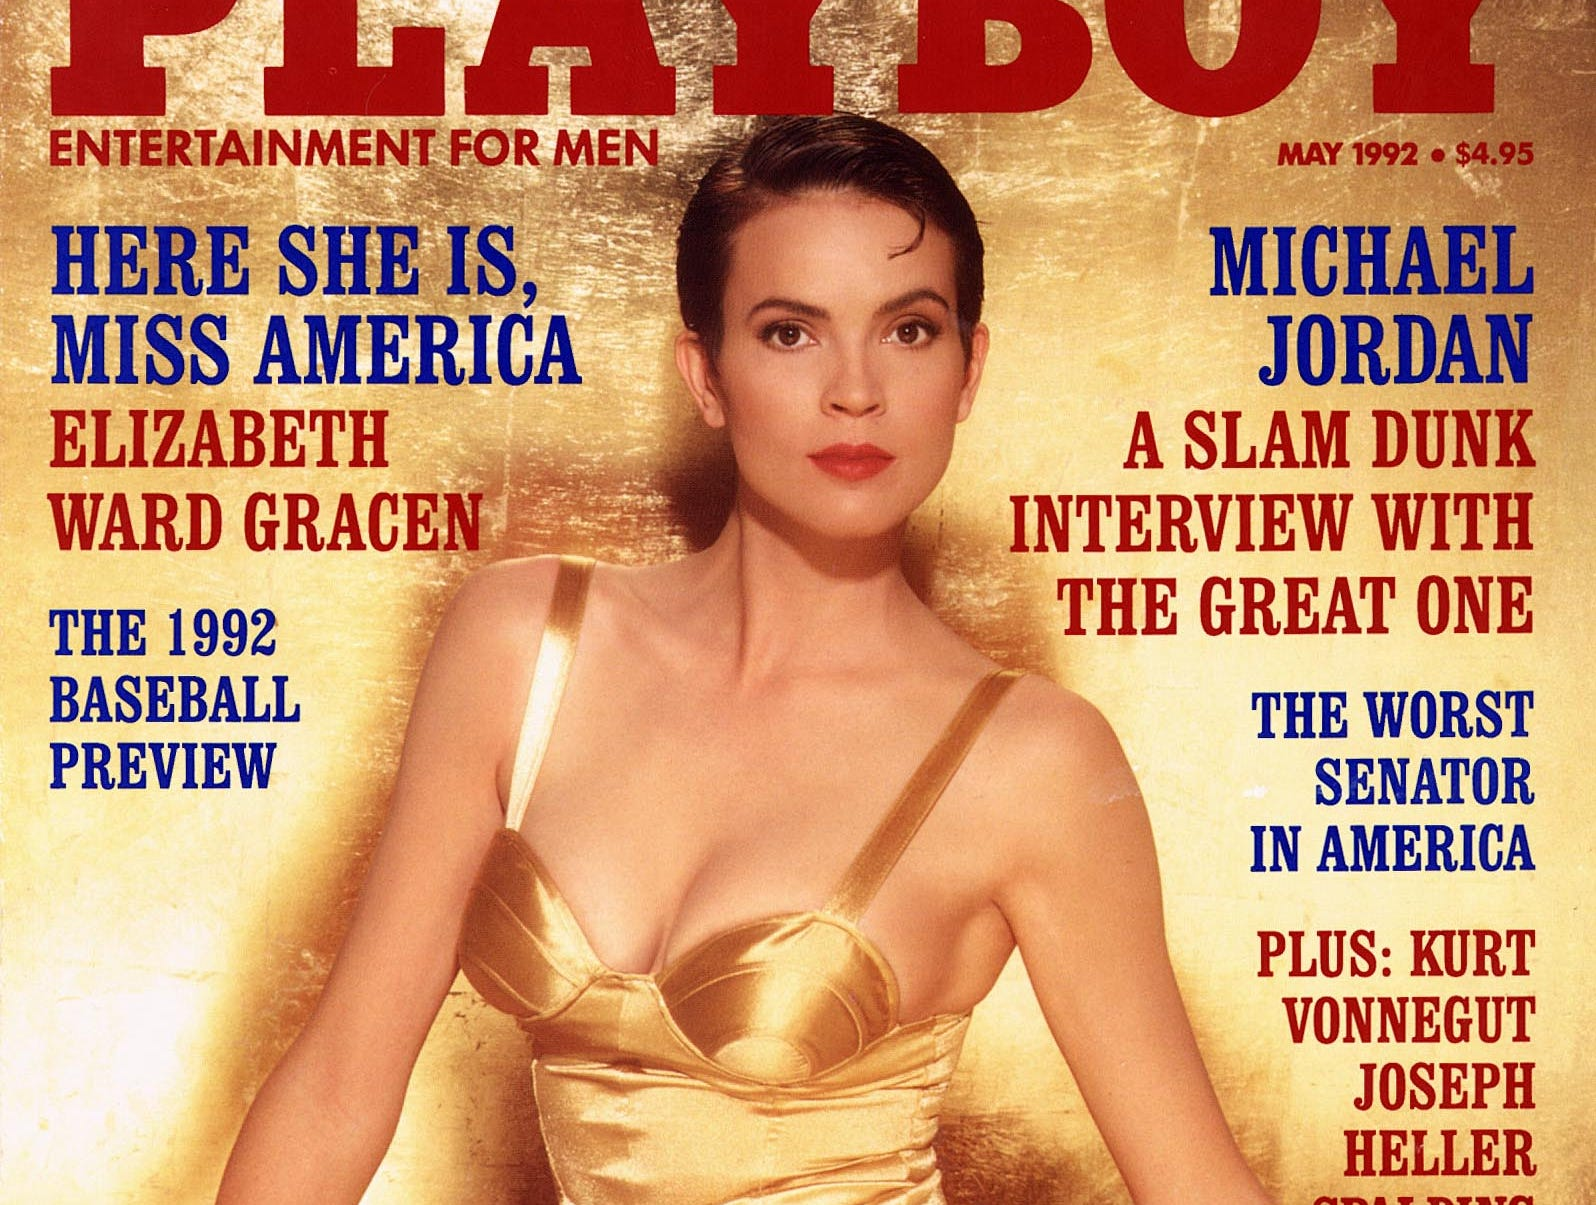 DATE TAKEN: Unavailable--- Playboy cover, 5/92, featuring Elizabeth Ward Gracen PHOTO MUST BE USED IN ITS ENTIRETY ORG XMIT: UT62559